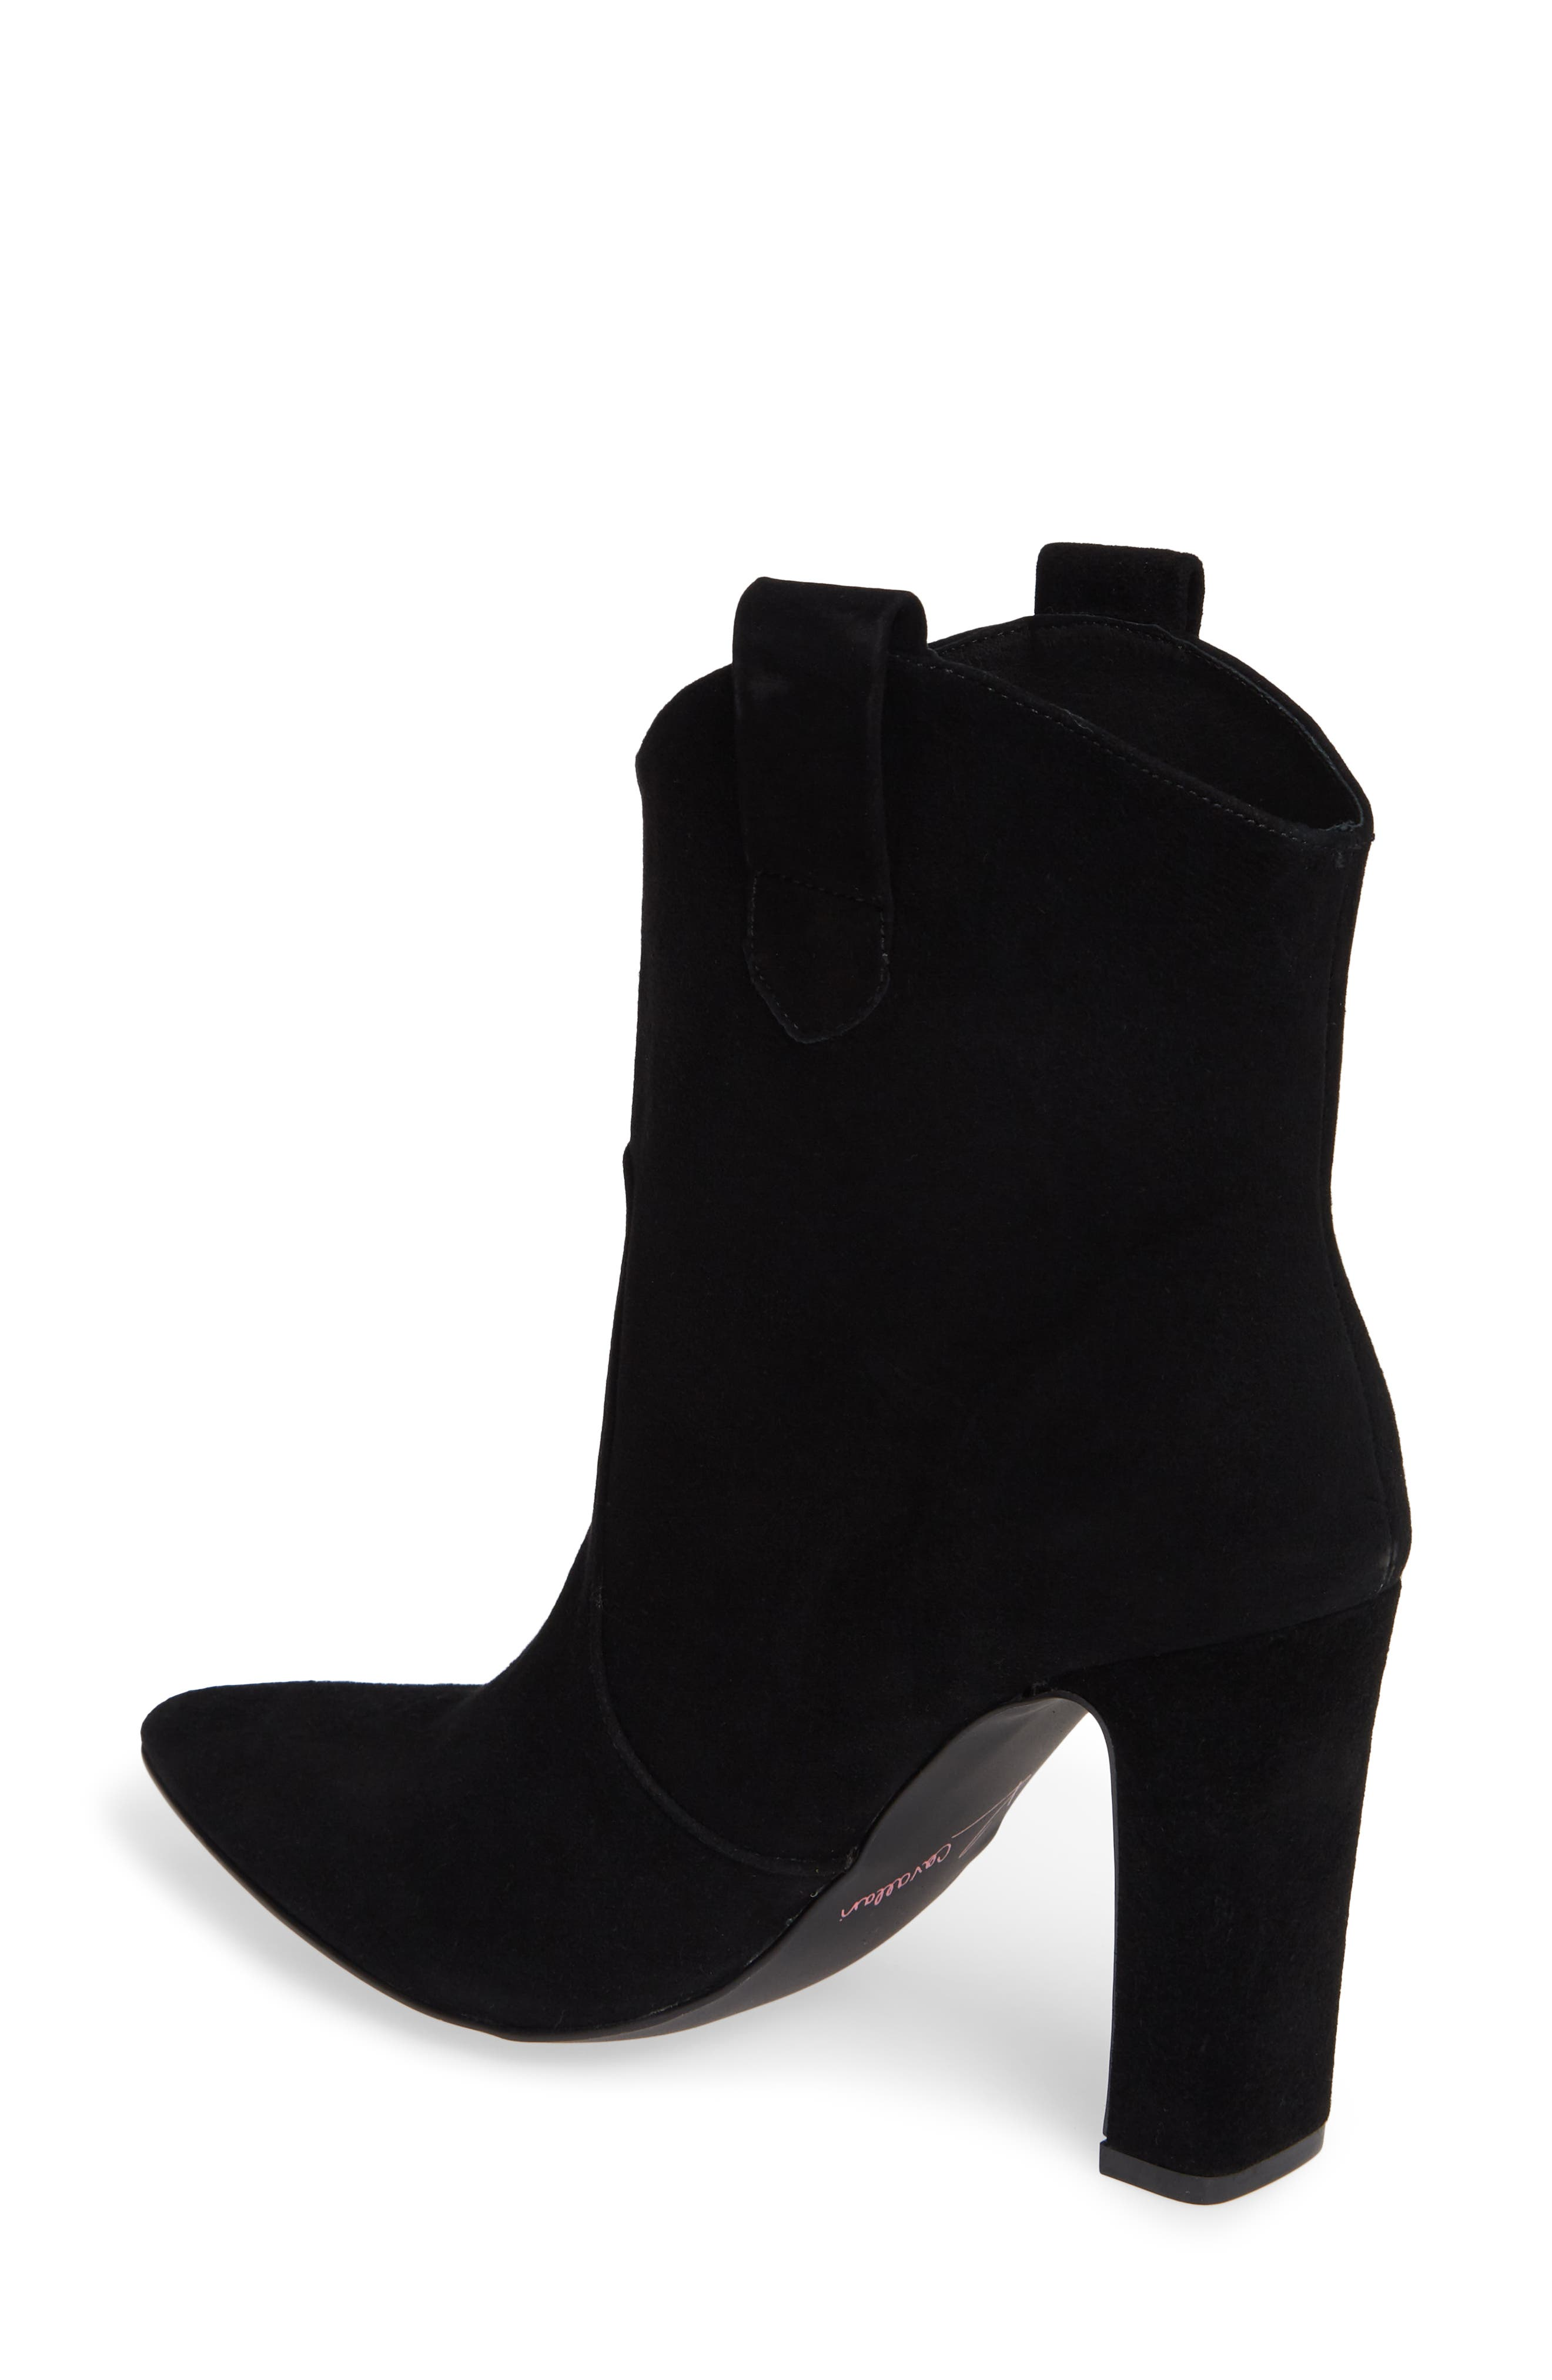 Karly Suede Bootie,                             Alternate thumbnail 2, color,                             BLACK SUEDE